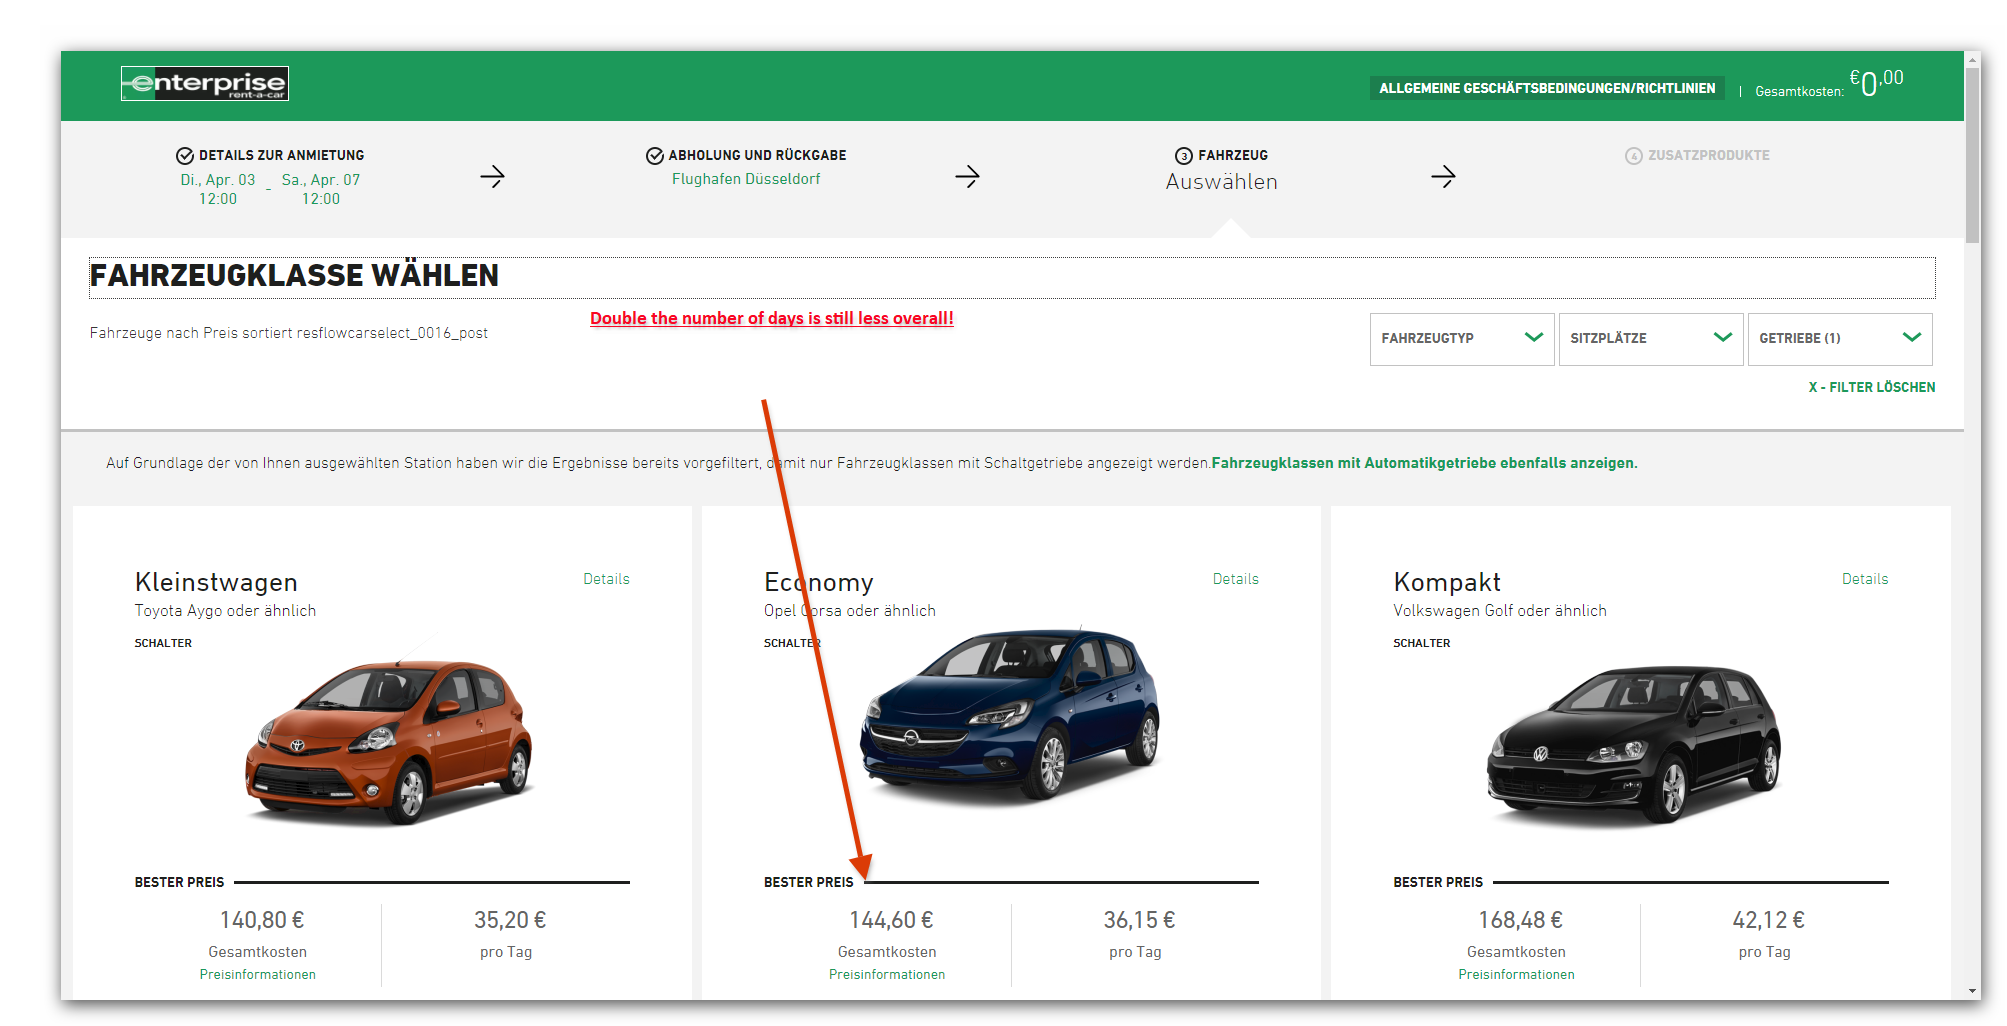 Enterprise Car Hire, is this what you call dynamic pricing